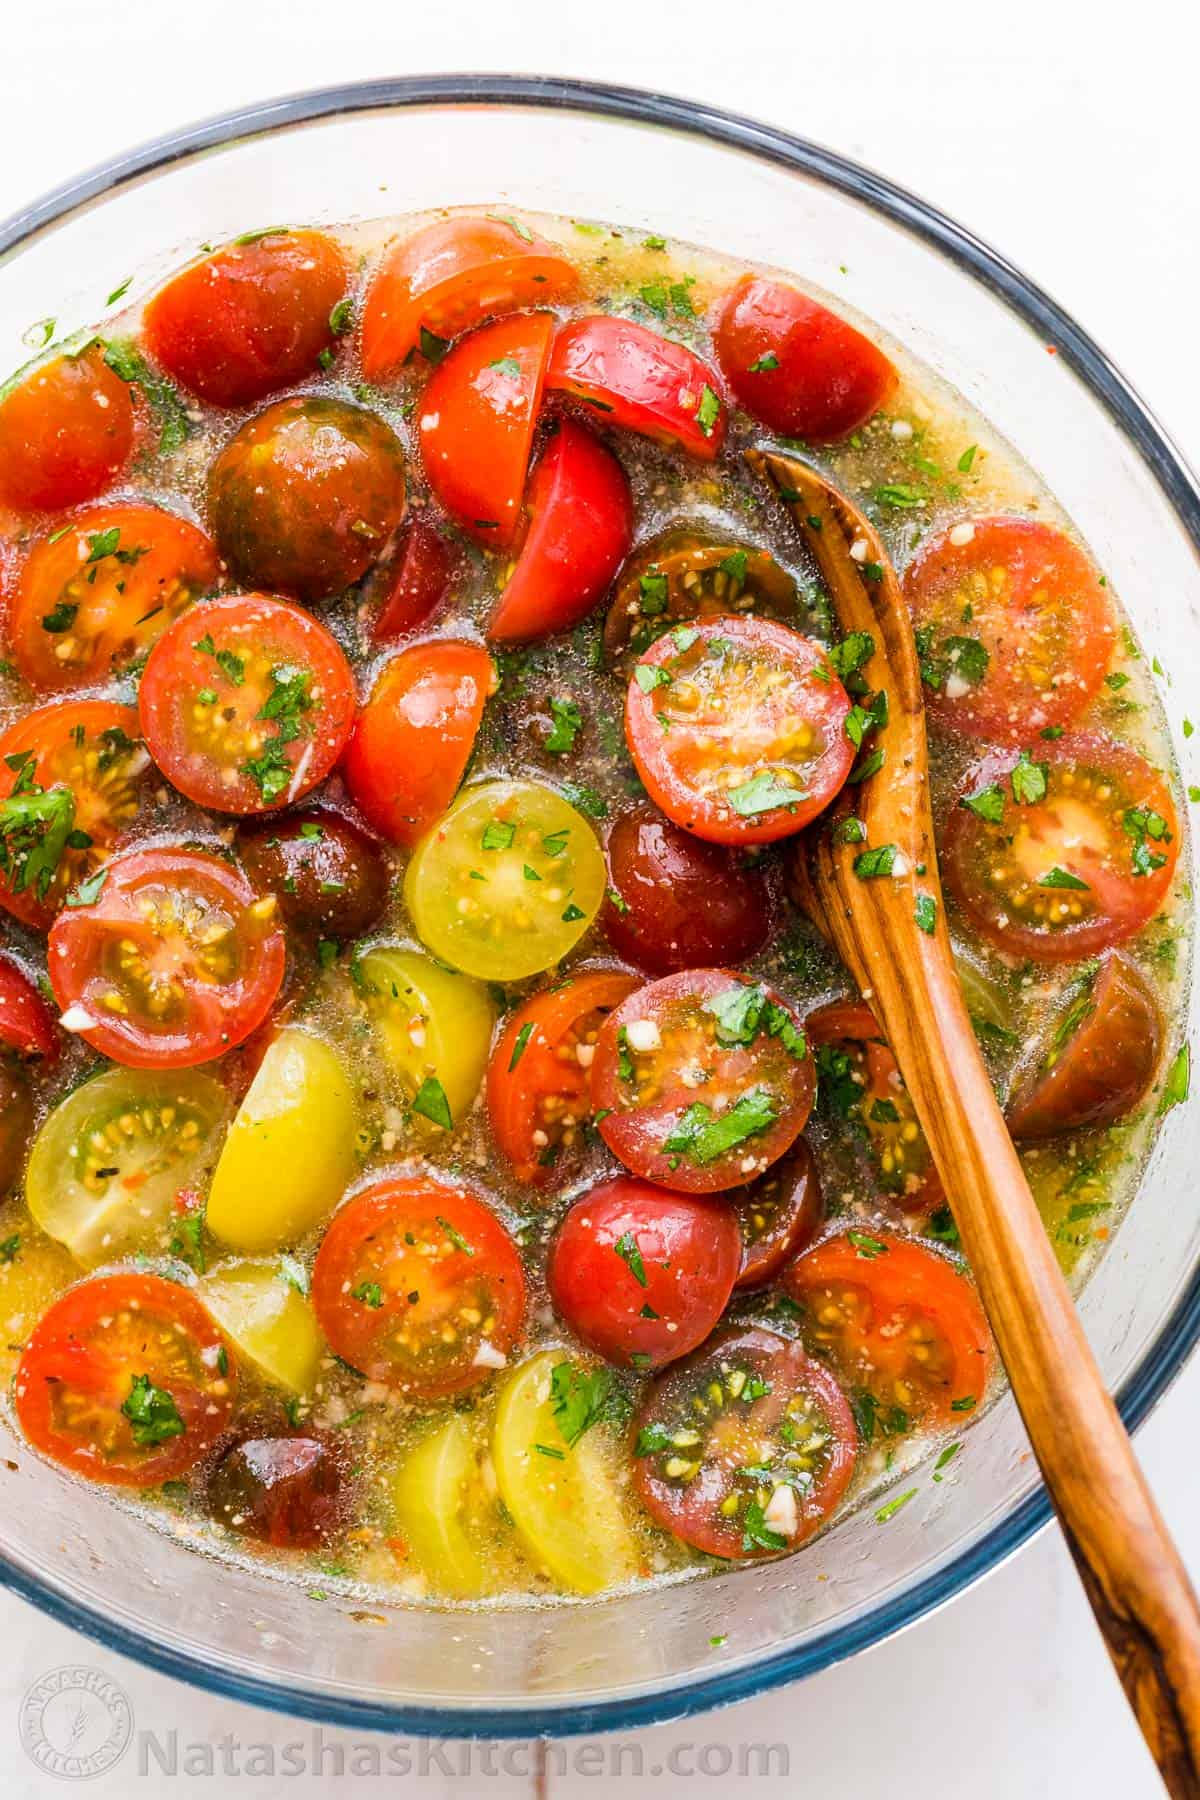 Dress up cherry tomatoes in a creamy buttermilk-basil dressing. Spicy Tomato Jam Try this versatile jam on toasted crostini, as a dip or with your morning eggs.